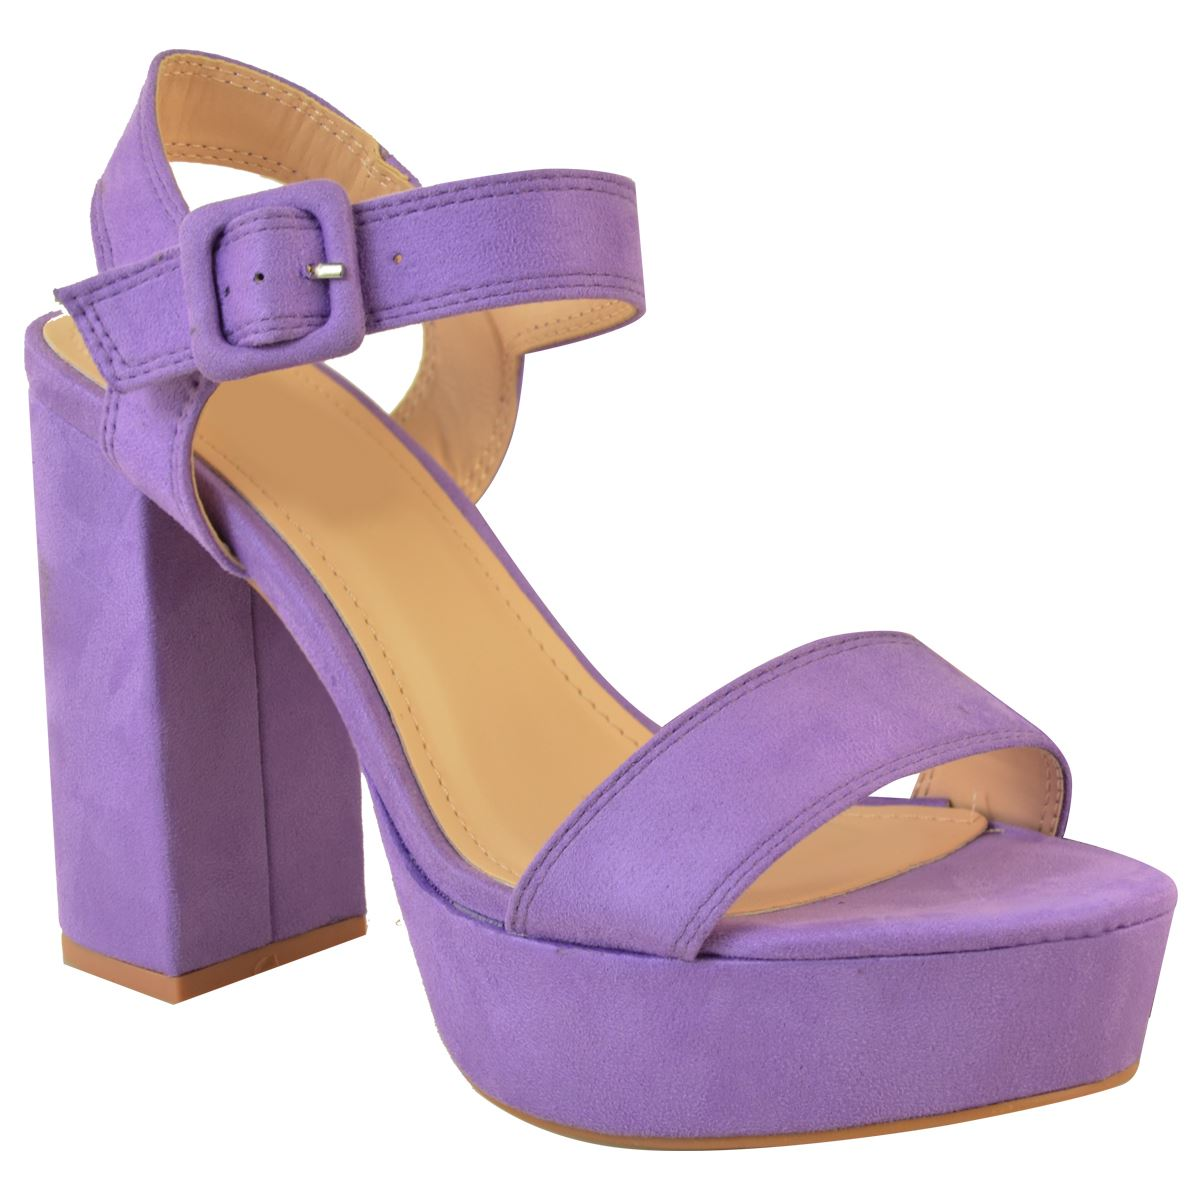 New-Womens-Summer-Platform-High-Heel-Sandals-Ladies-Open-Toe-Strappy-Party-Shoes thumbnail 28